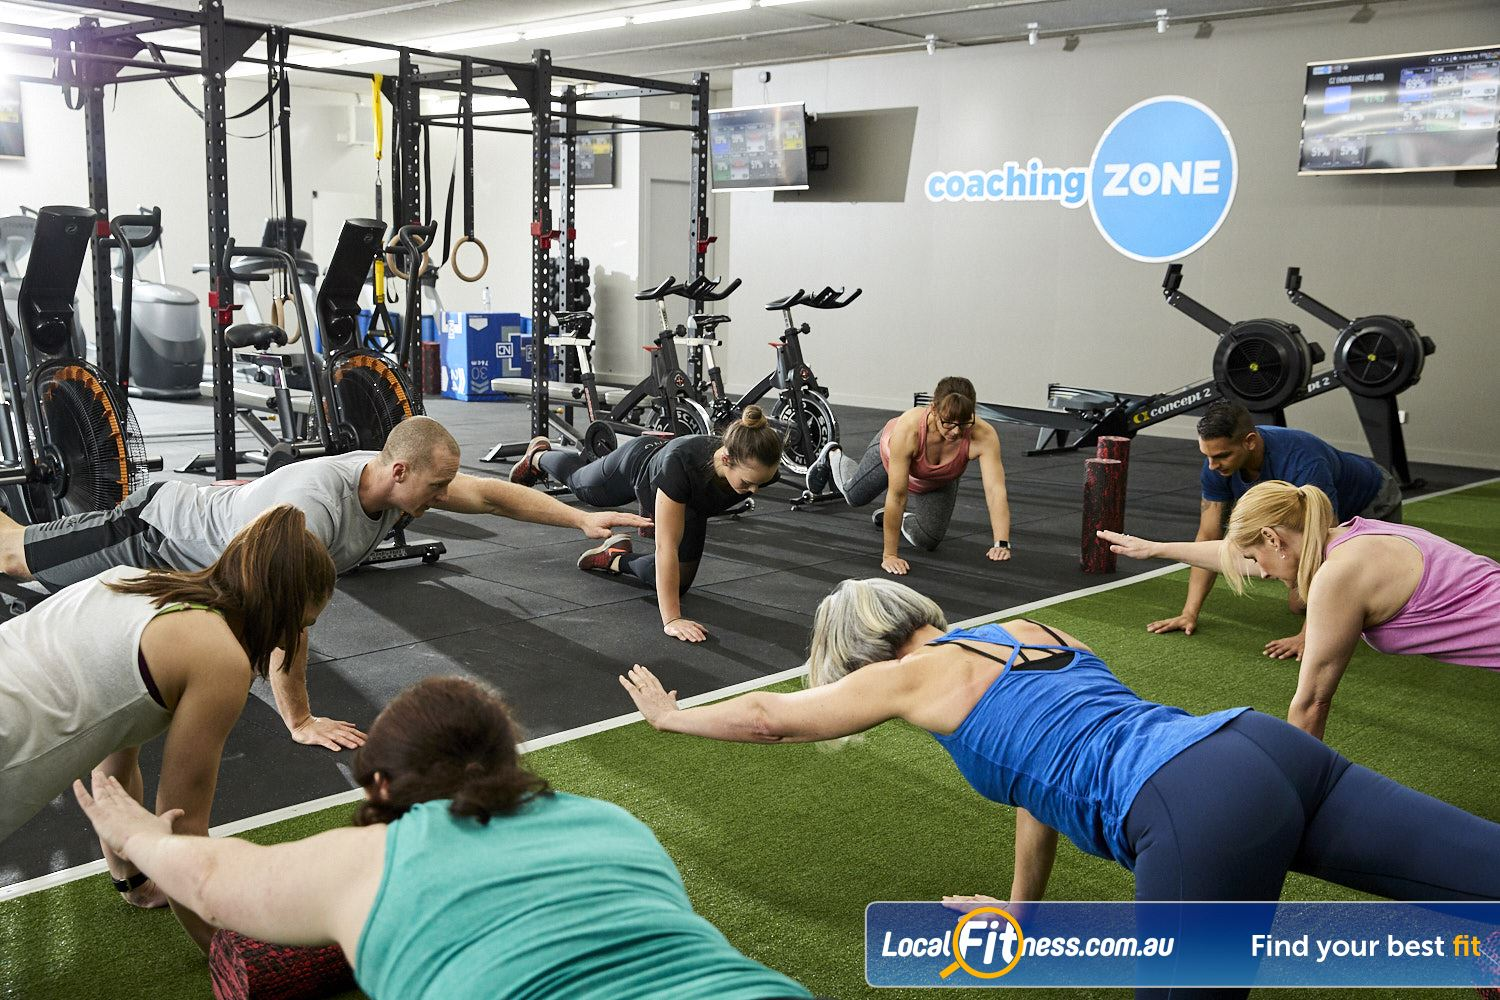 Coaching Zone Near Tremont Structured warm-ups to help prevent injuries.